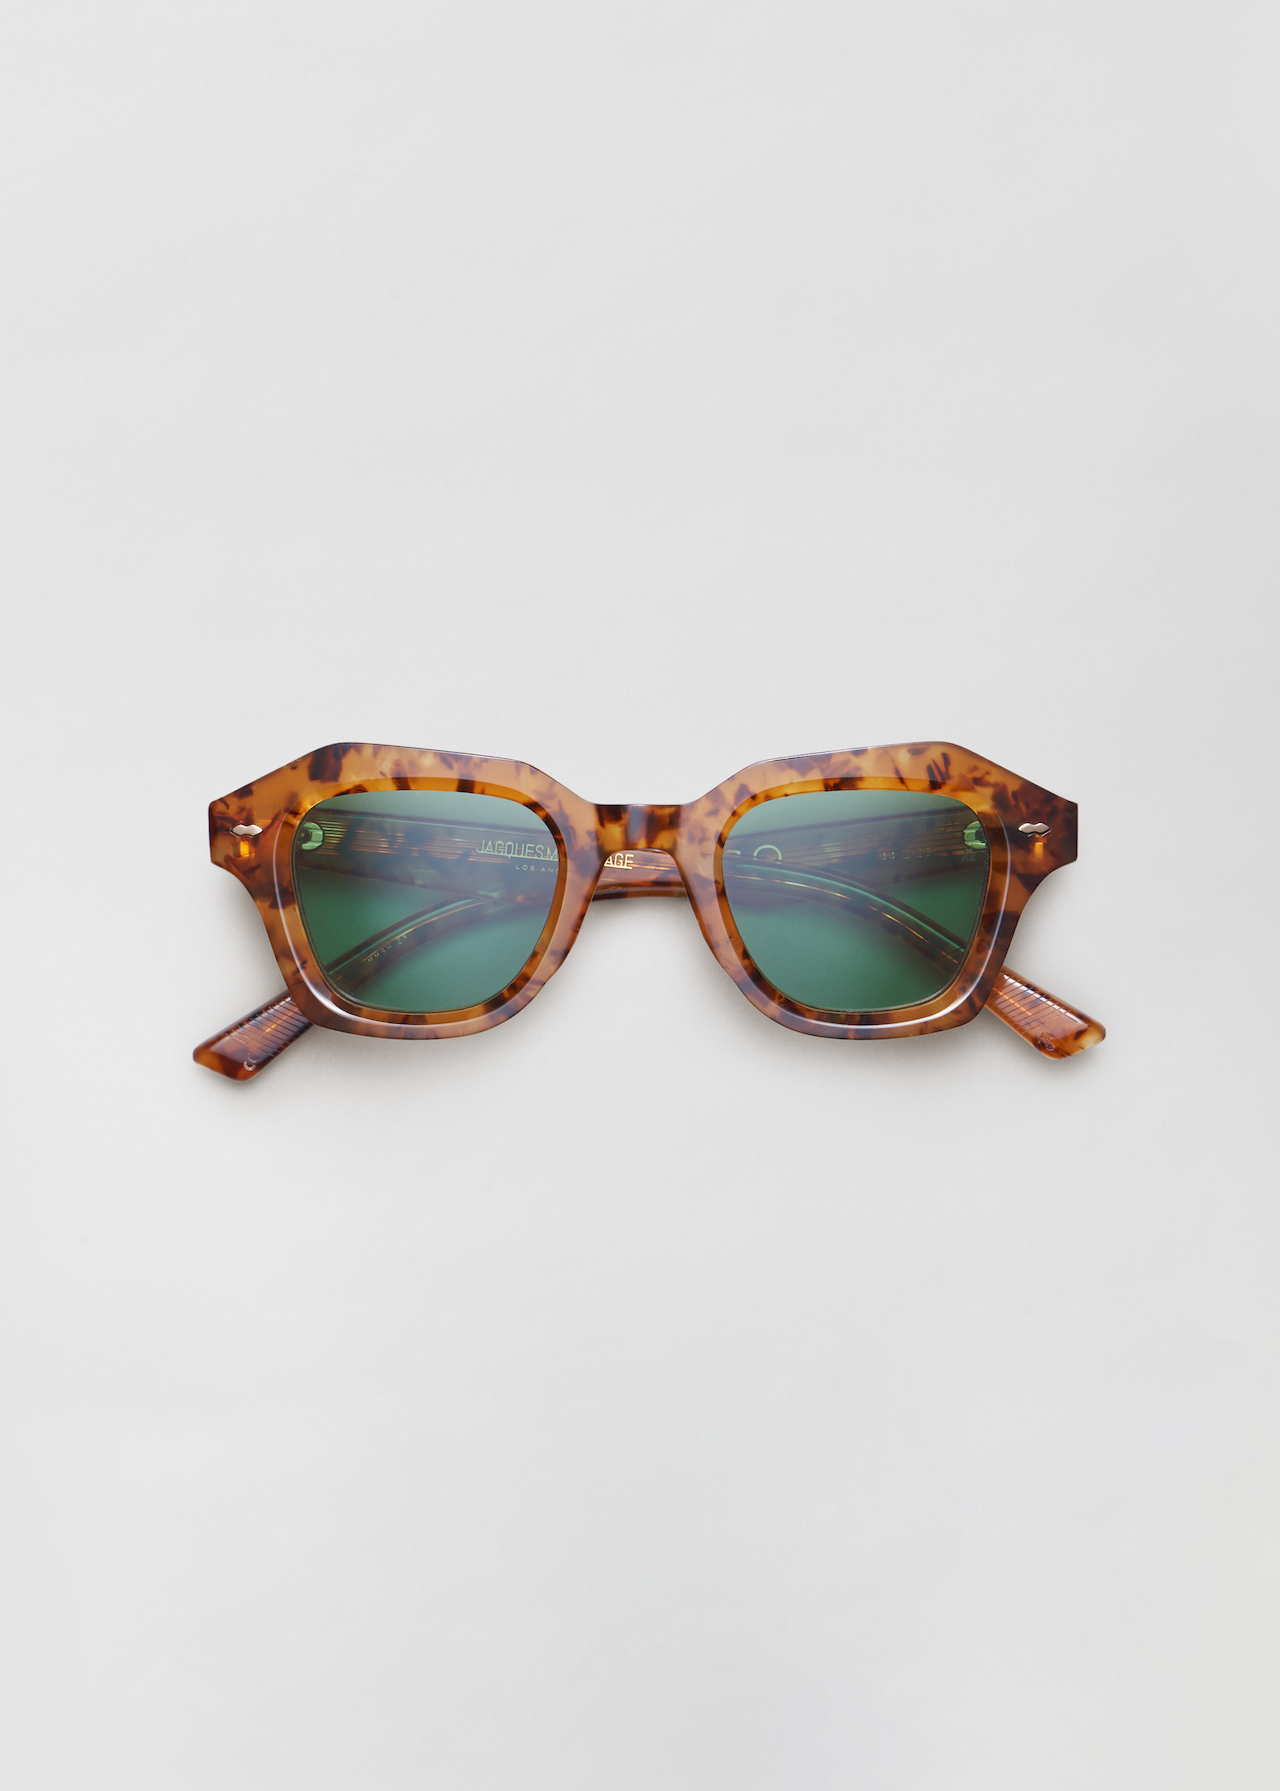 Schindler Sunglasses in Empire in Vintage Tortoise by Co Collections